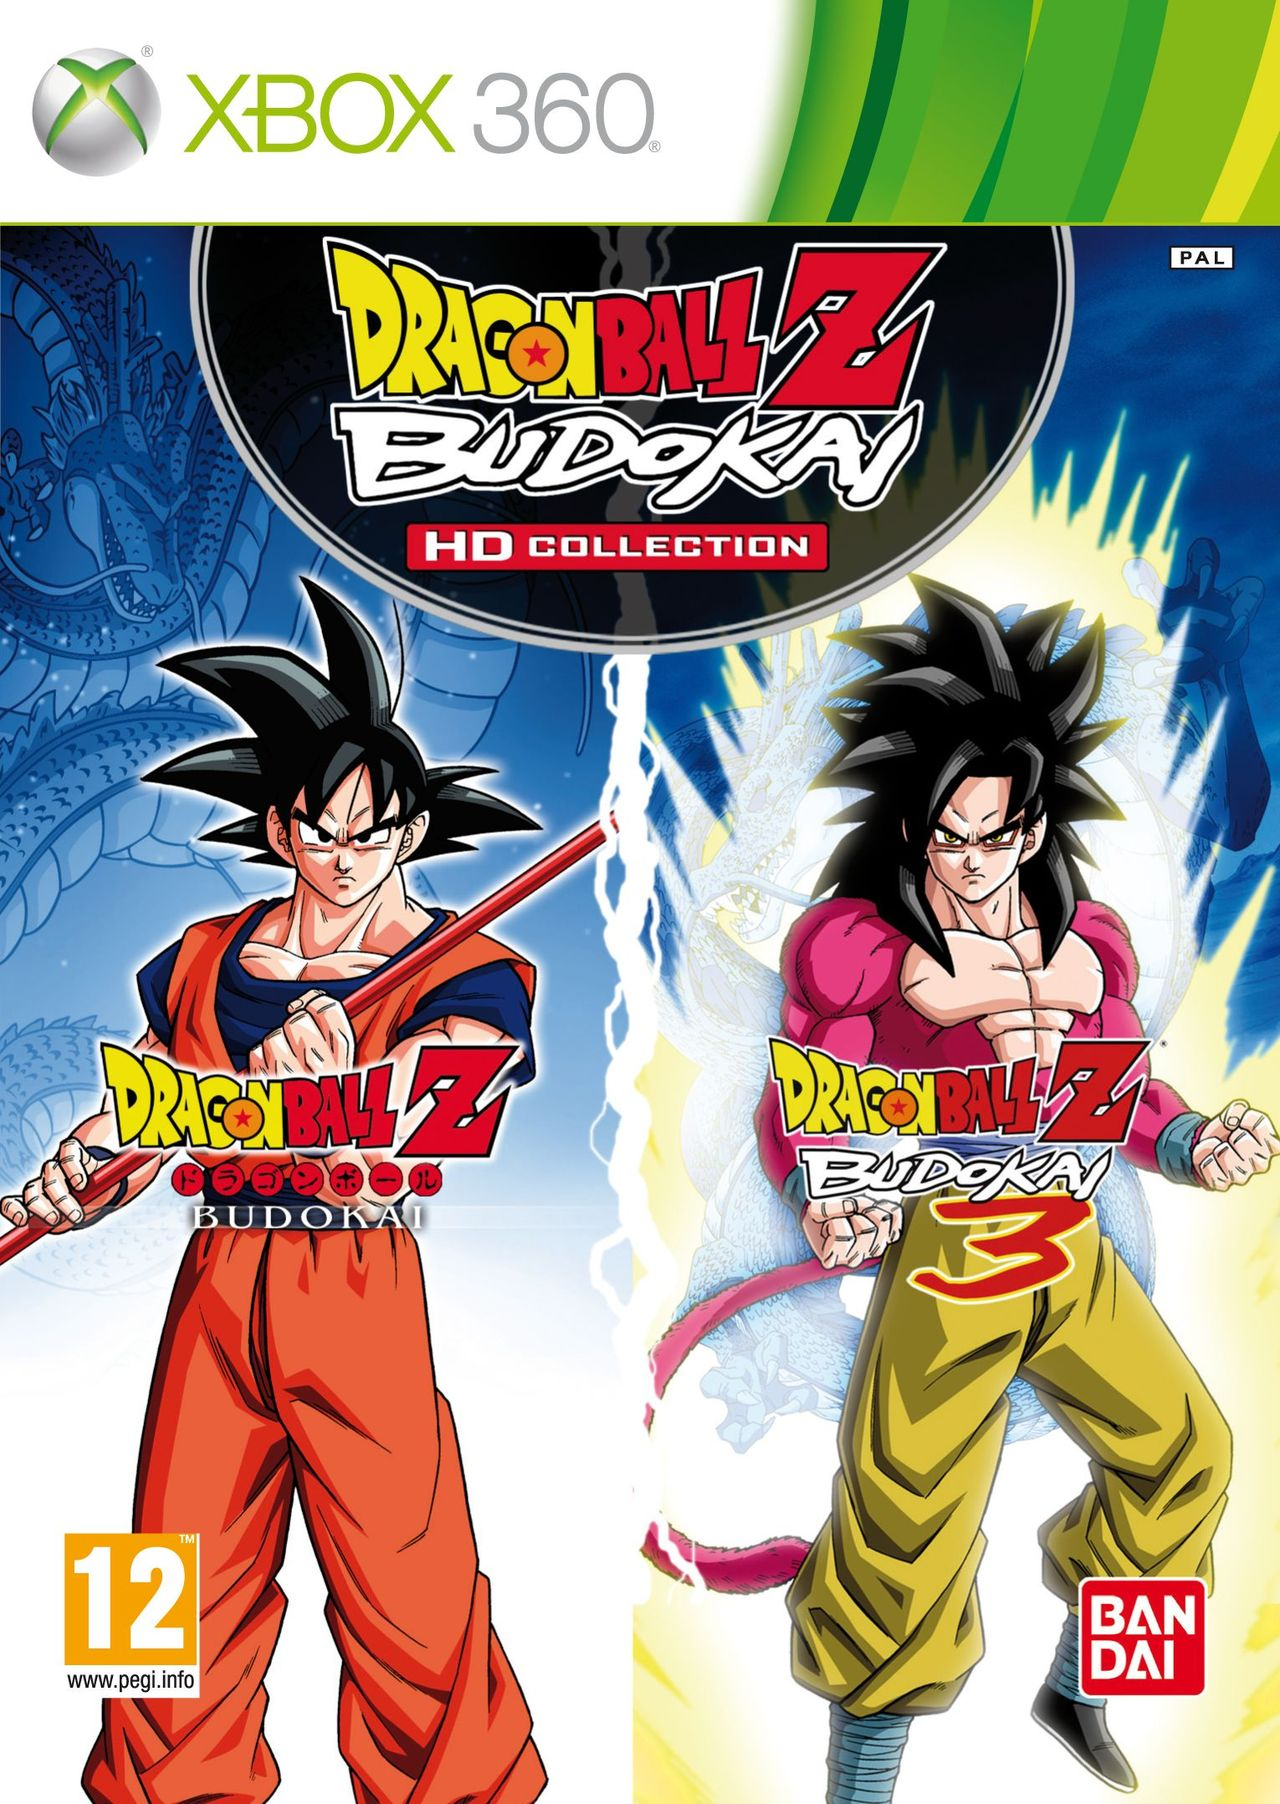 Dragonball Z Budokai HD Collection PAL XBOX360 [MULTI]